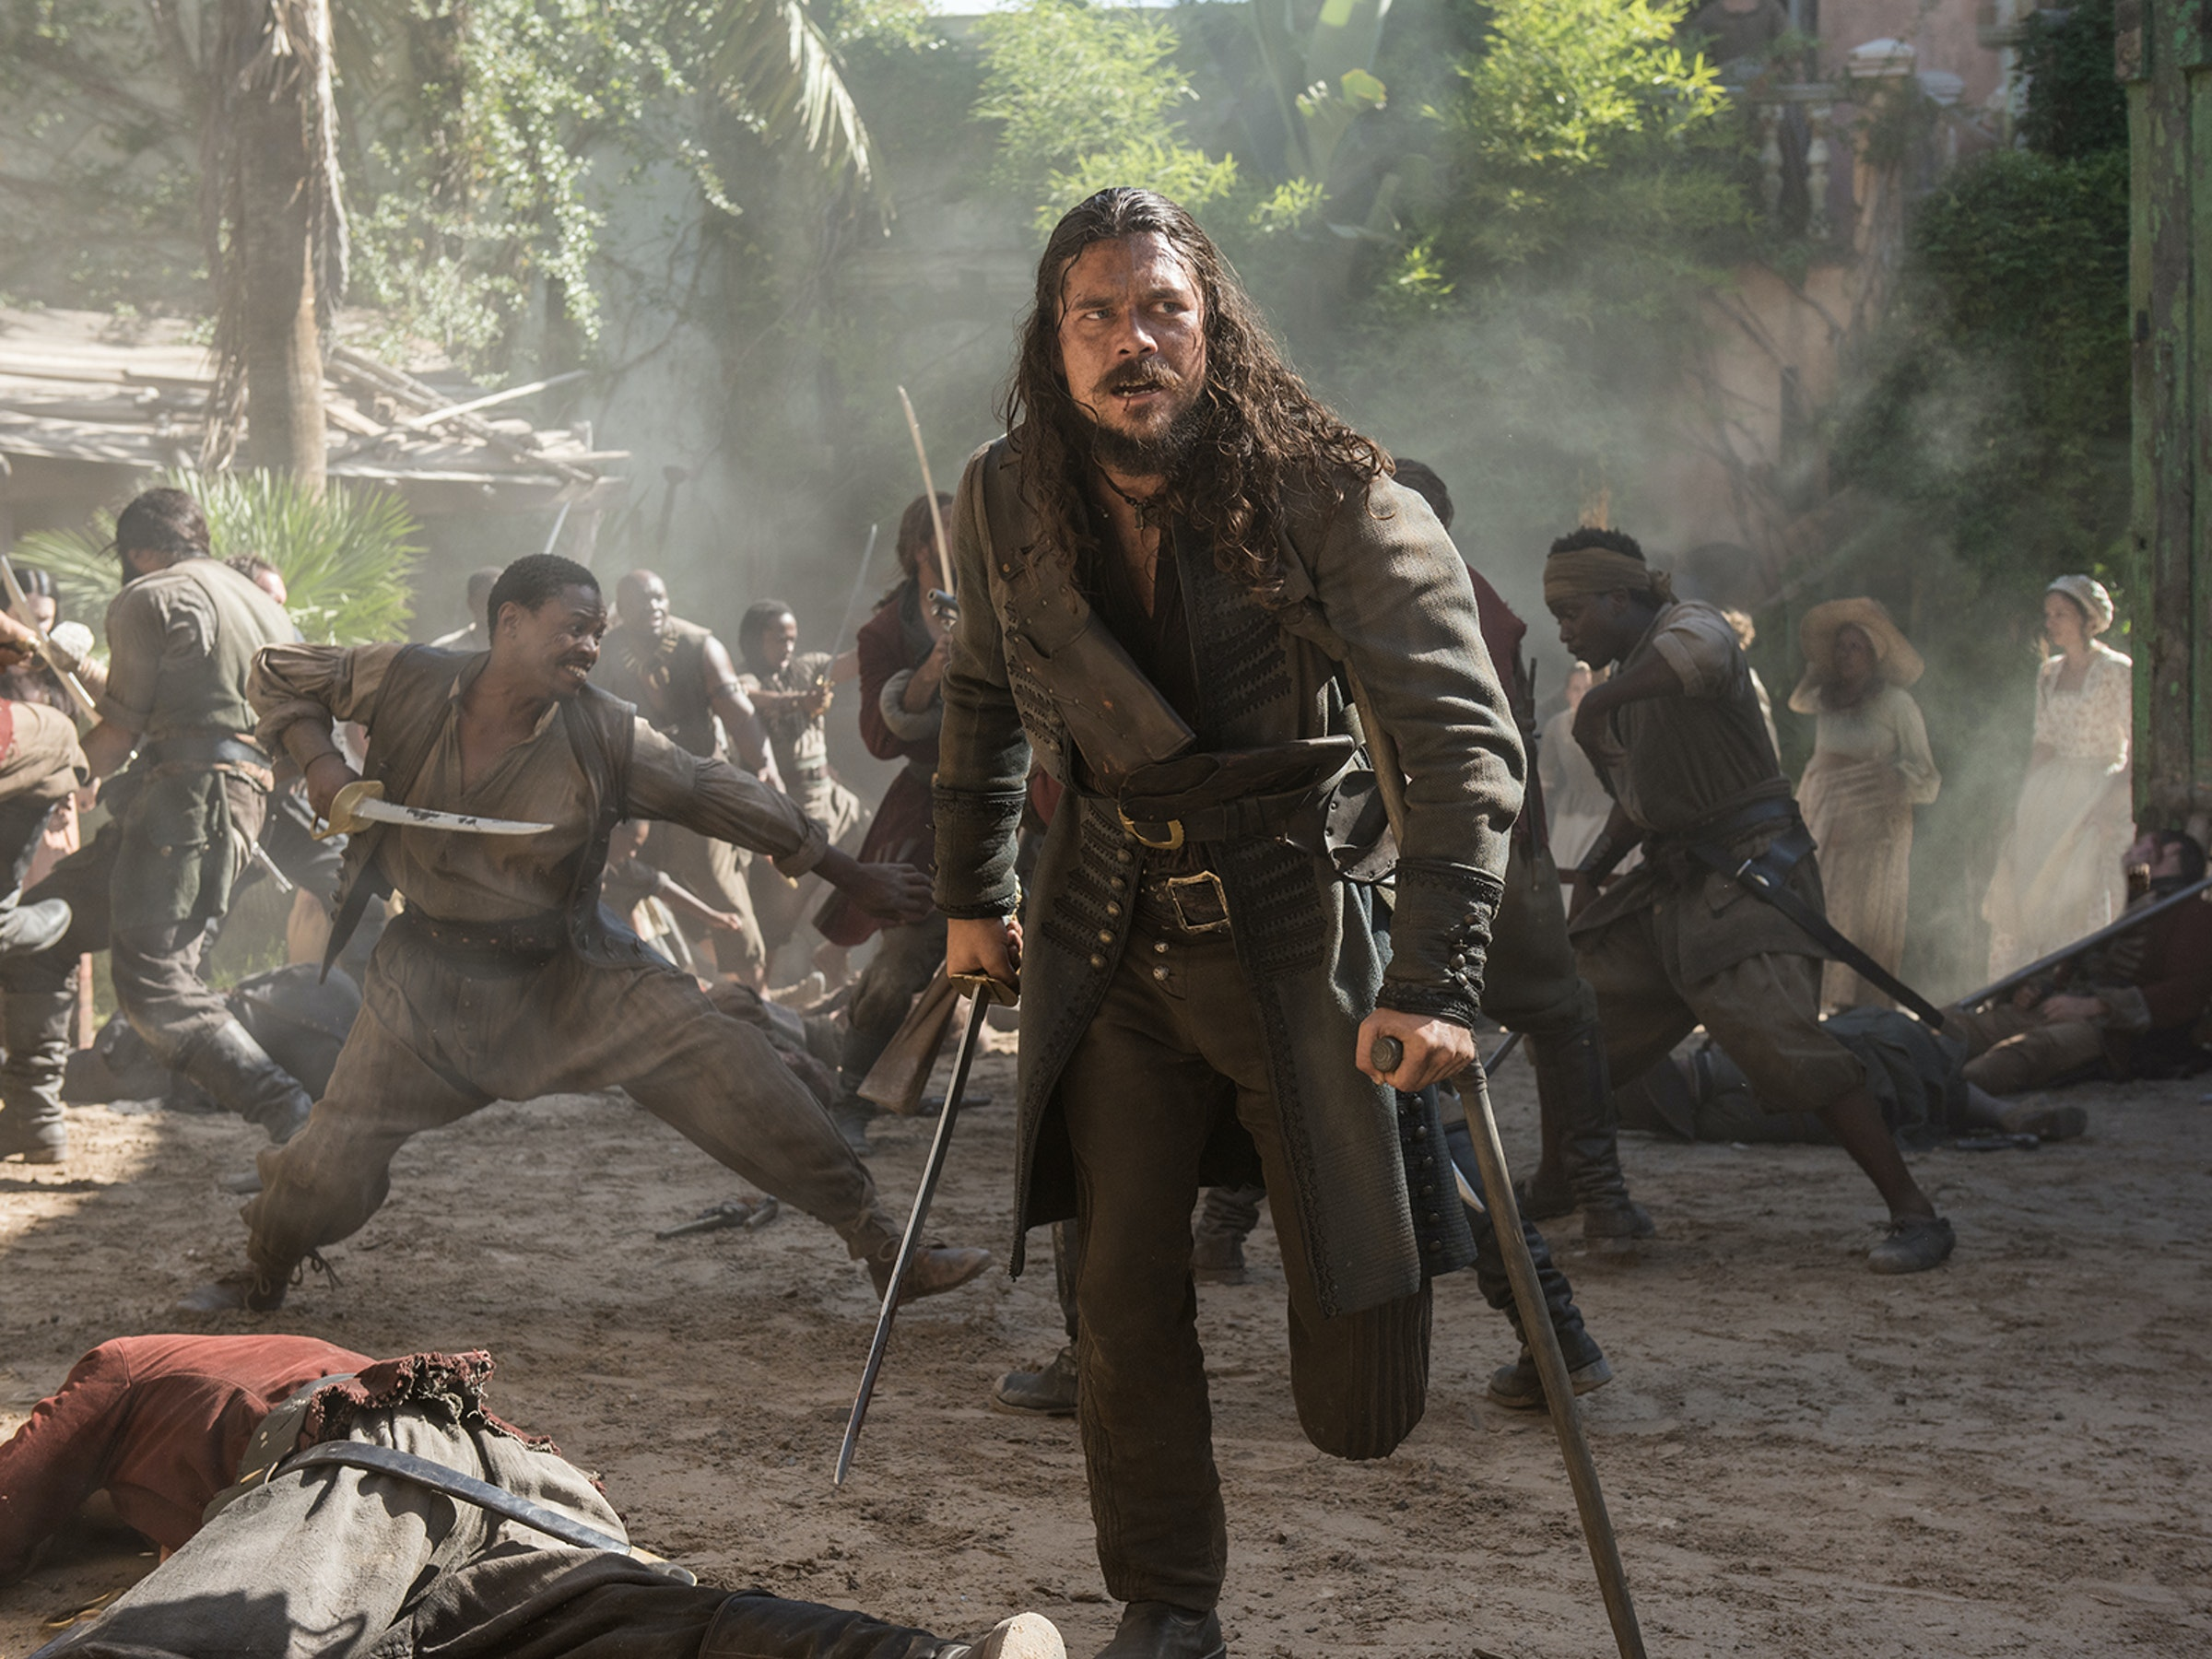 Silver Will Be the Center of 'Black Sails' Season 4